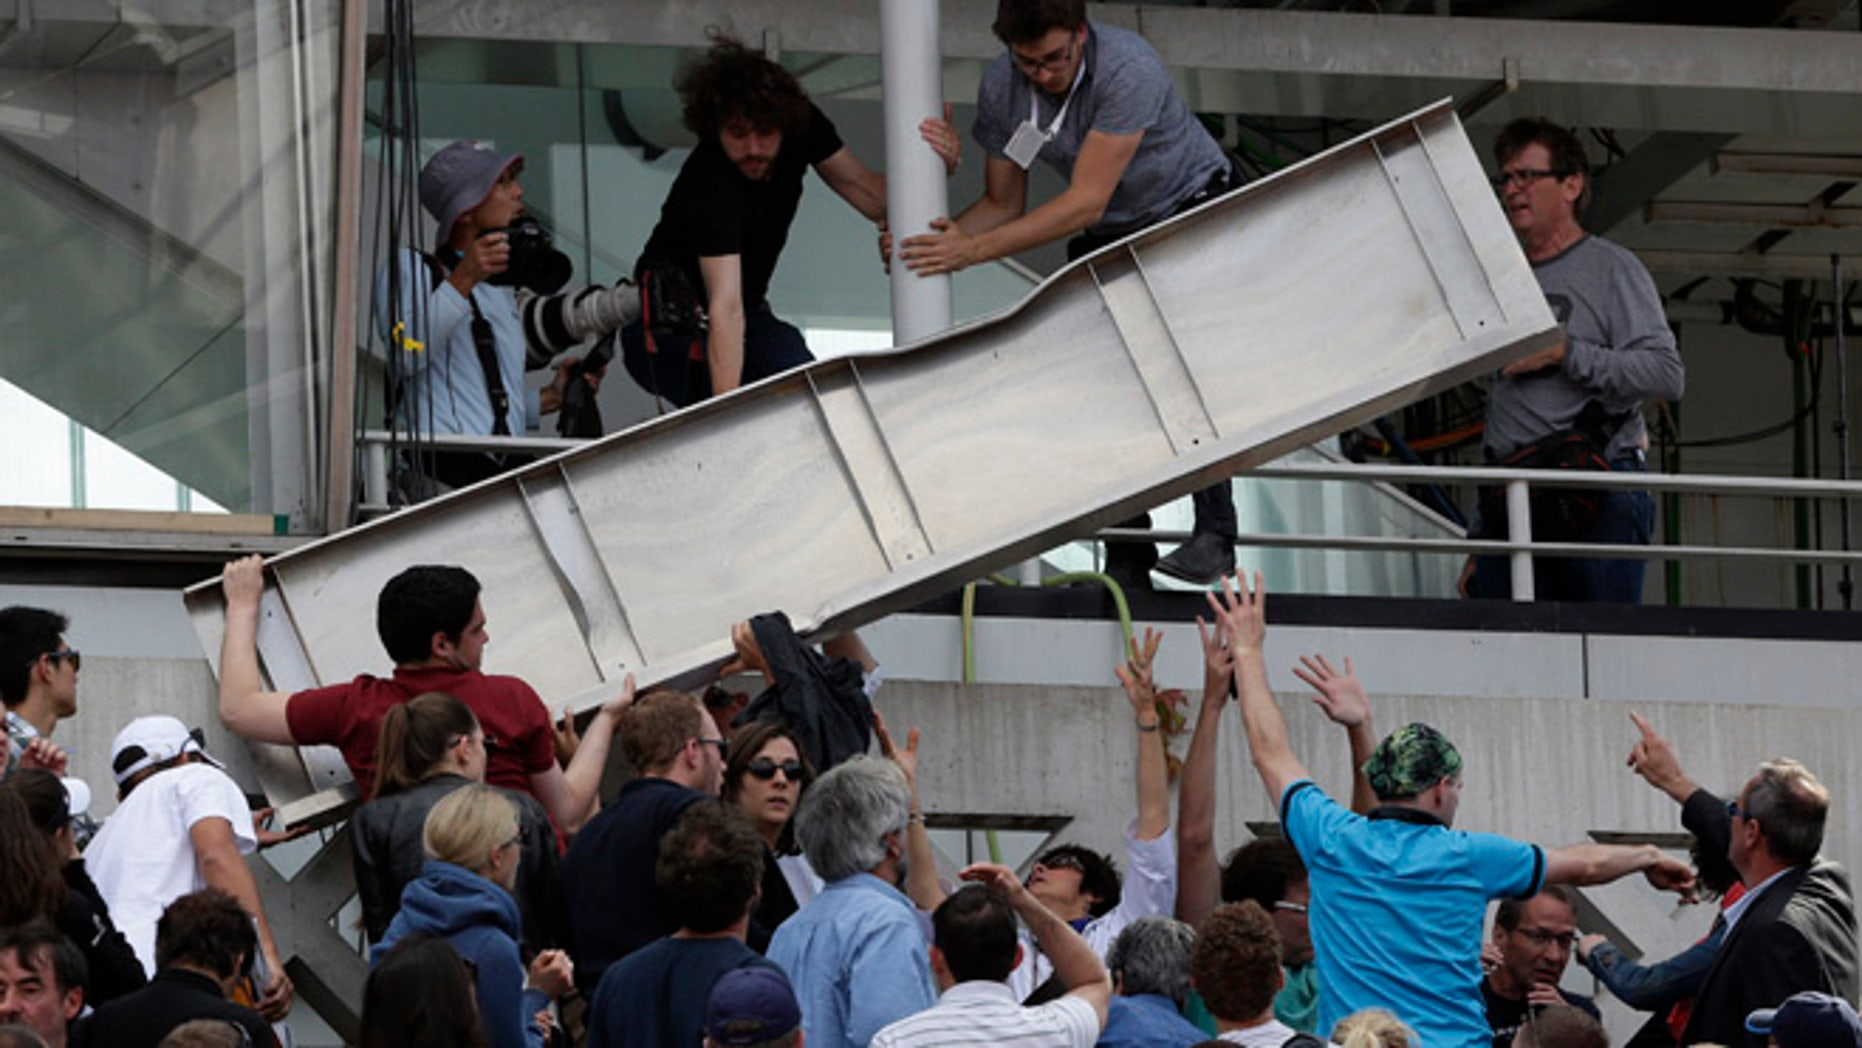 June 2, 2015: People remove a piece of metal which fell on a stand of center court as France's Jo-Wilfried Tsonga plays Japan's Kei Nishikori during their quarterfinal match of the French Open tennis tournament at the Roland Garros stadium in Paris, France.